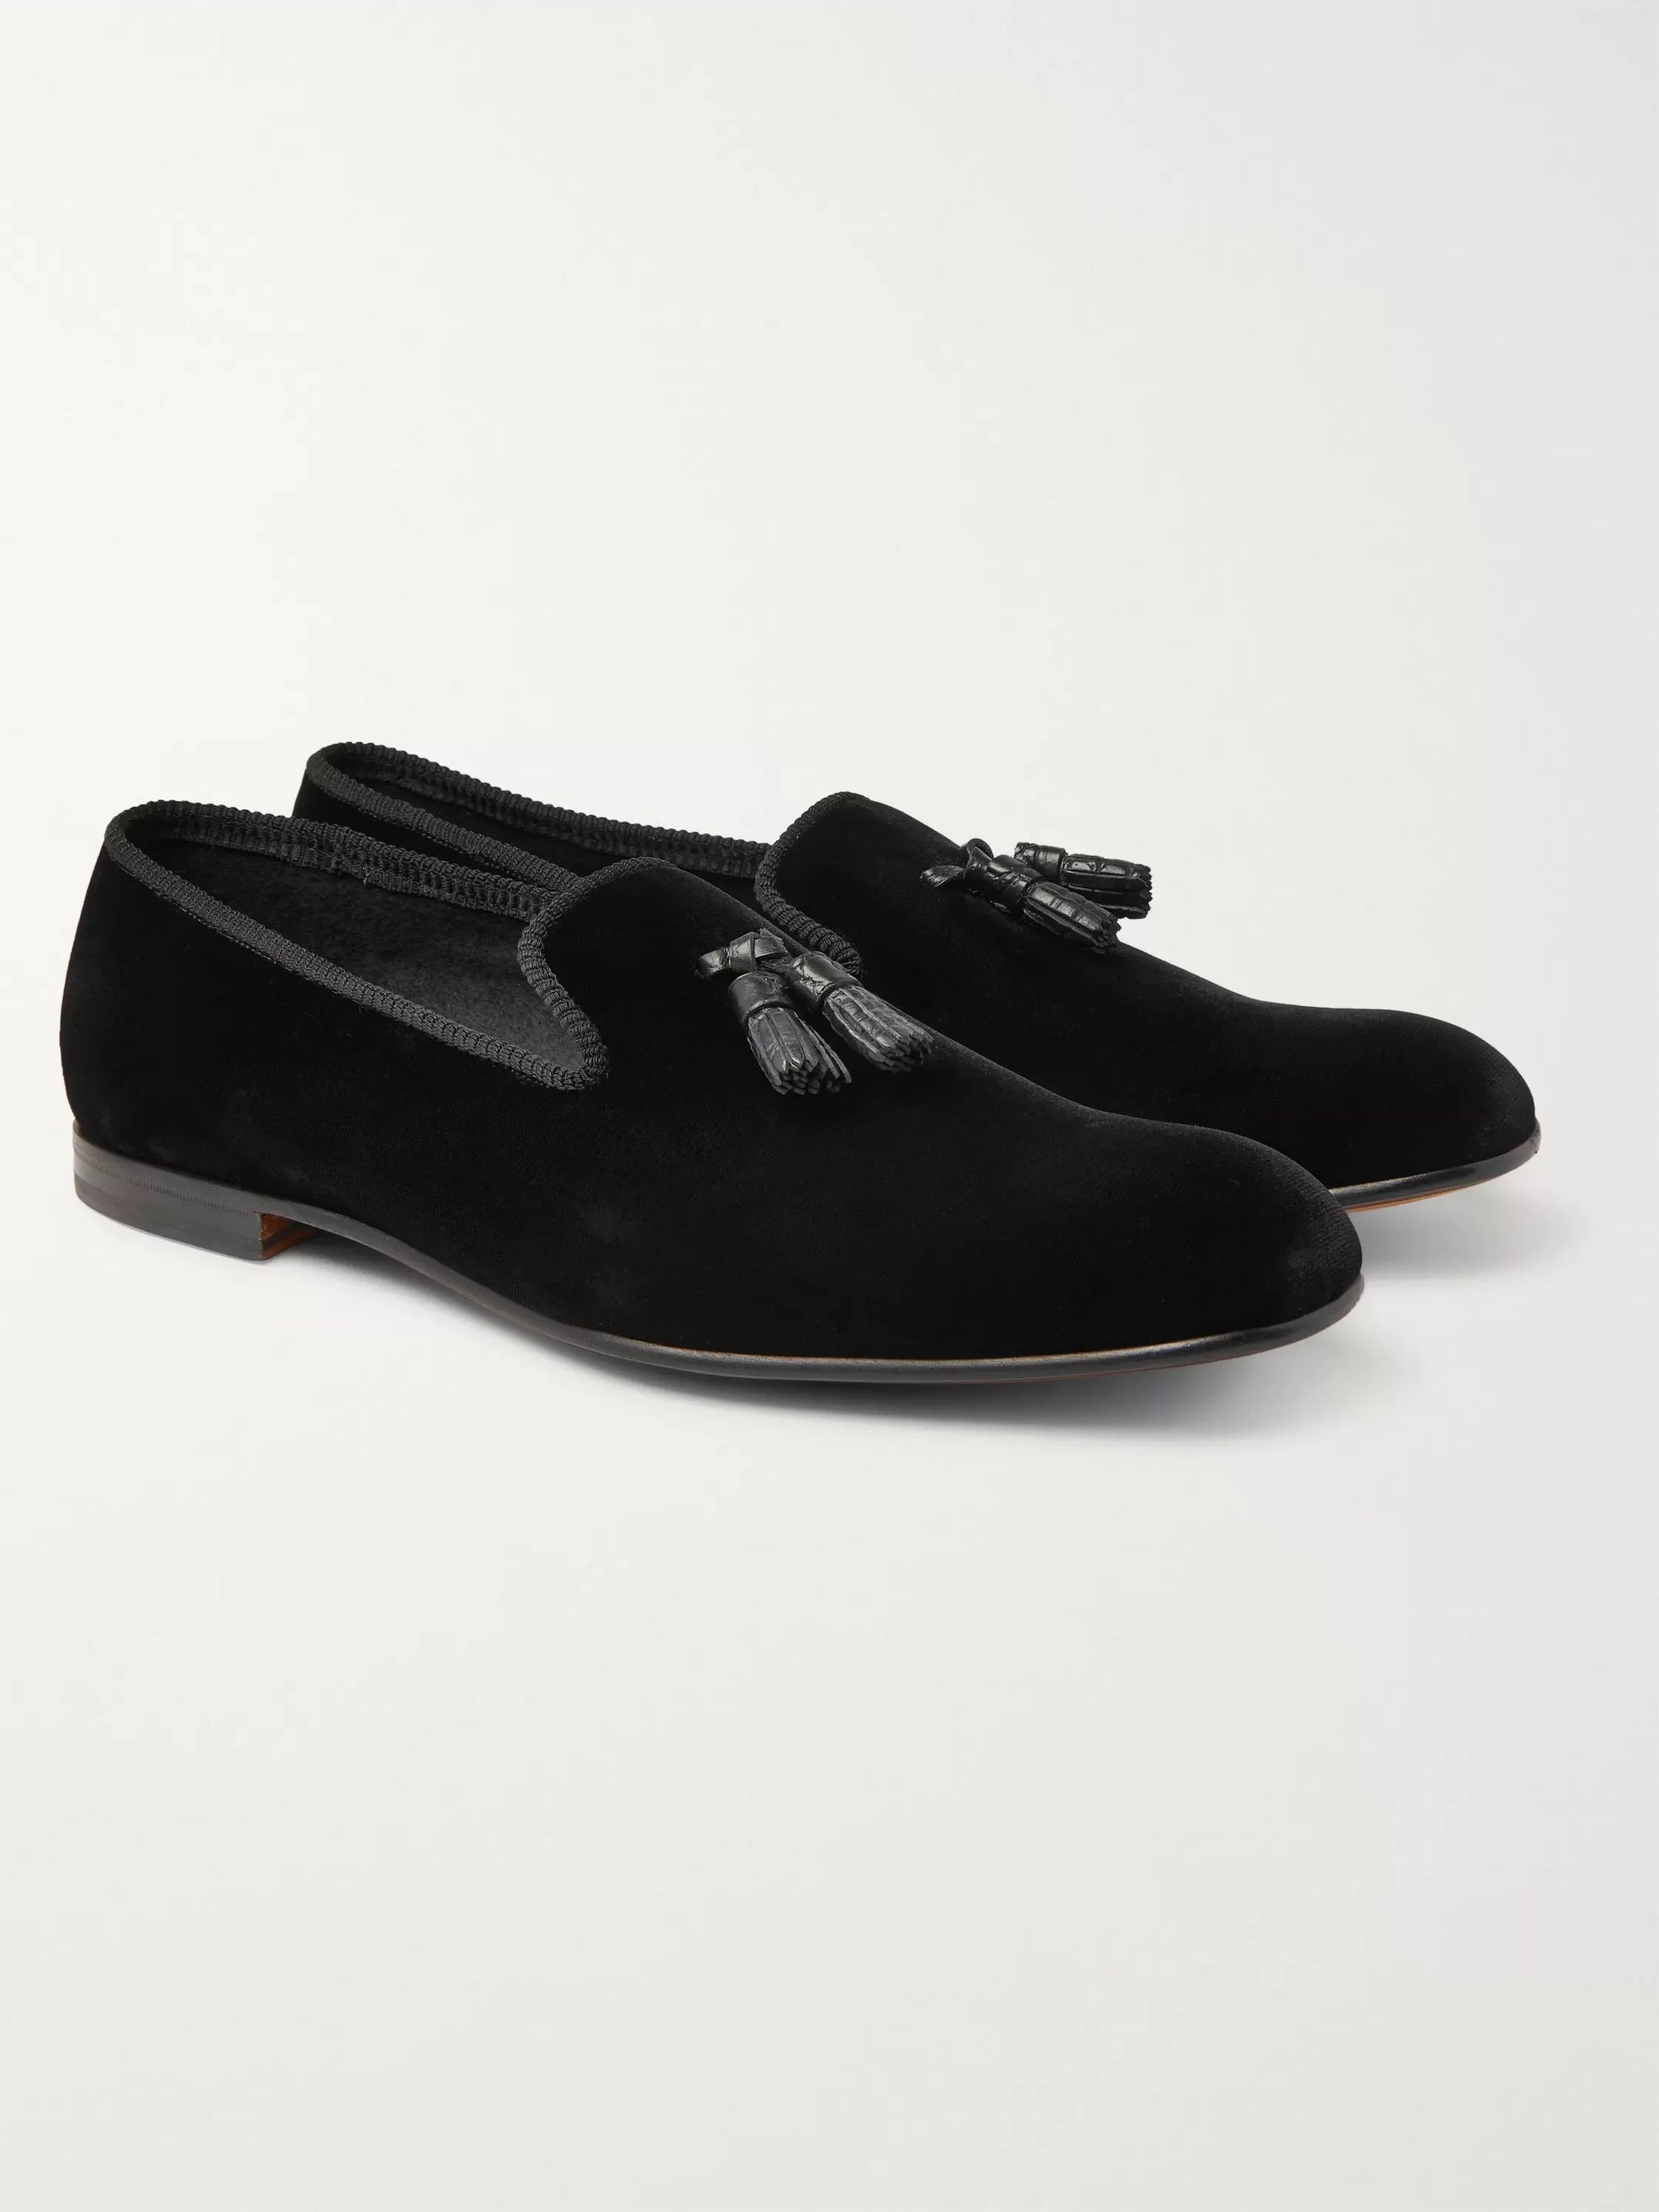 TOM FORD William Leather-Trimmed Velvet Tasselled Loafers